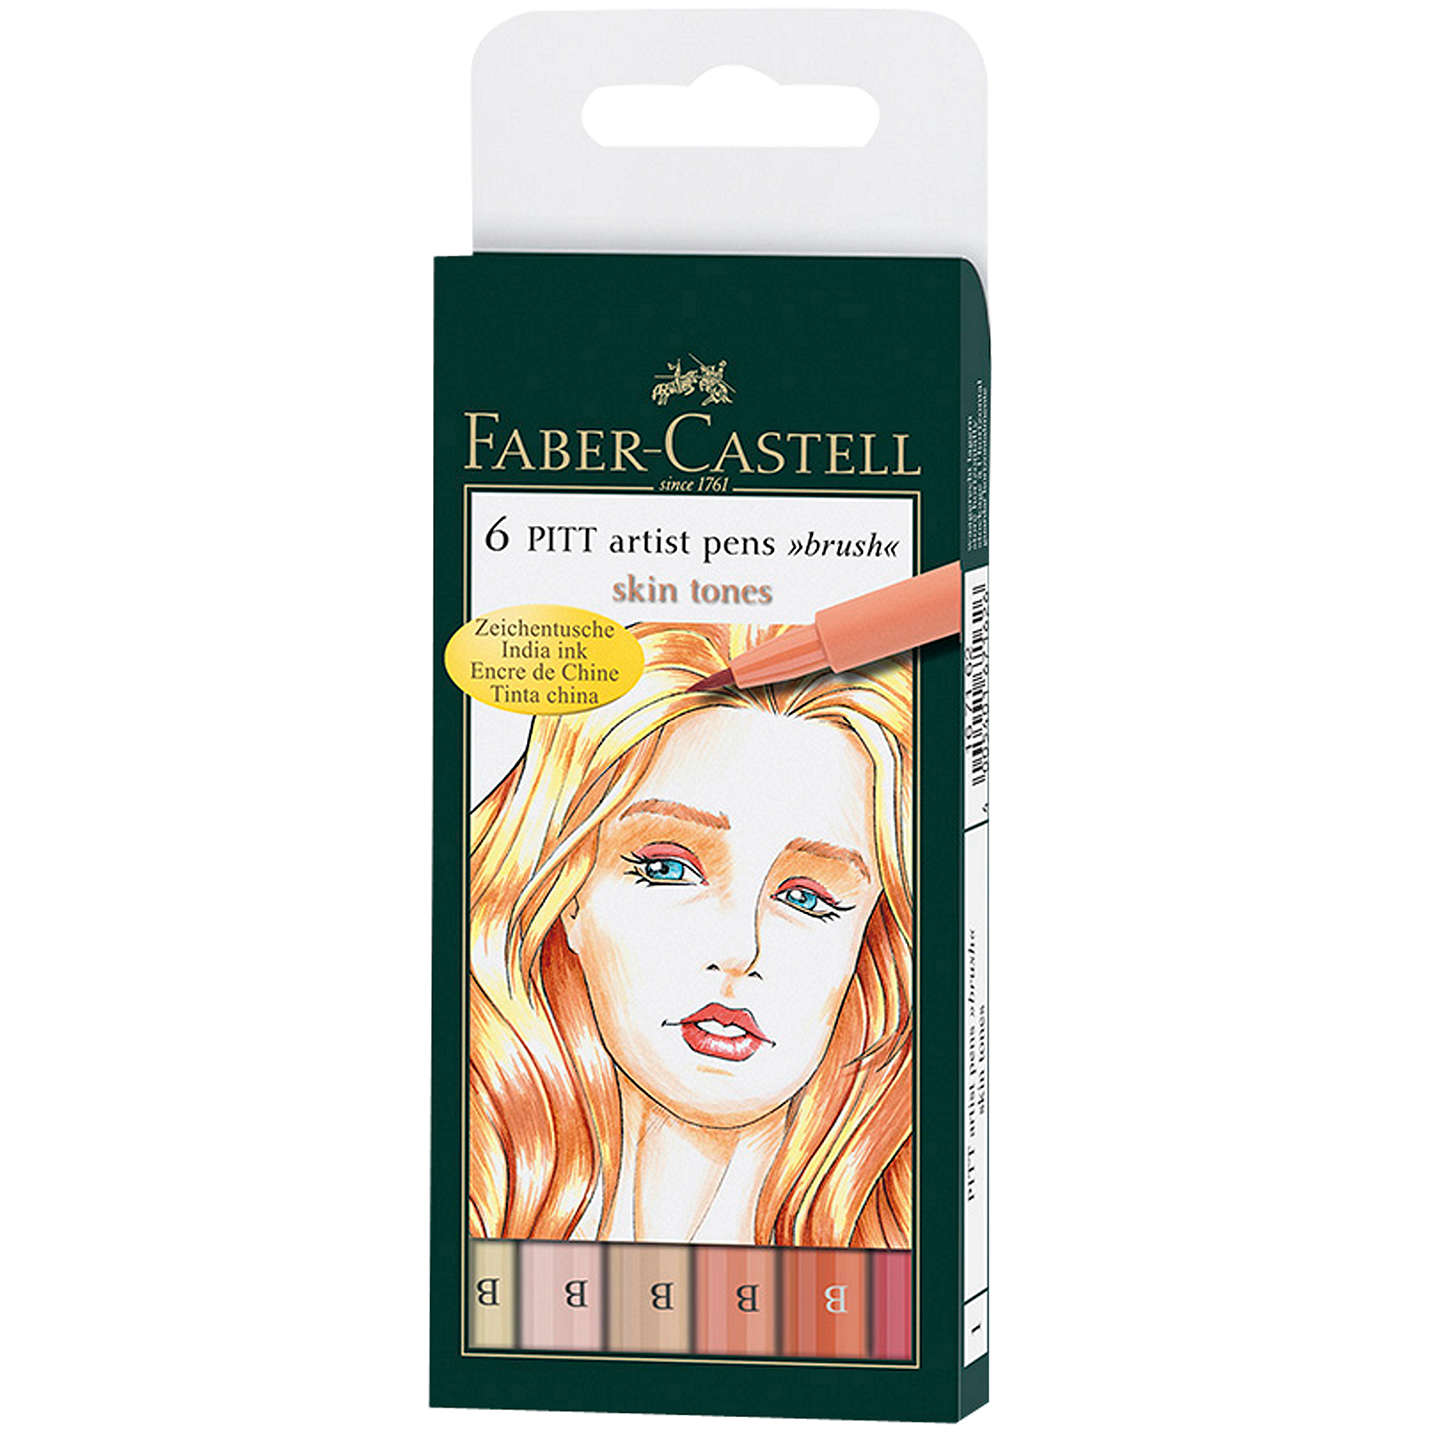 BuyFaber-Castell Pitt Artists Pens, Pack of 6, Skin Tones Online at johnlewis.com